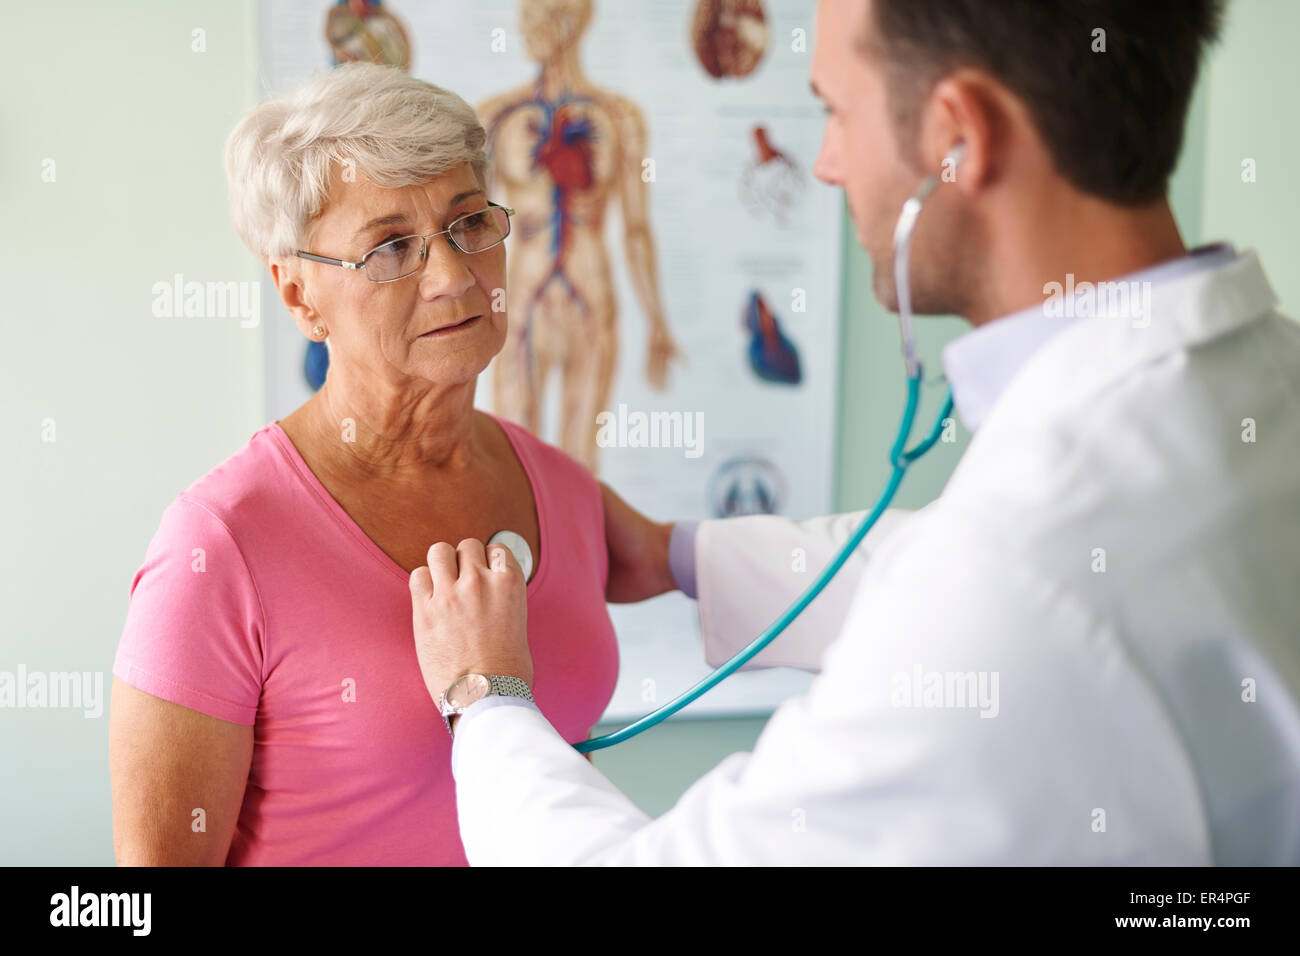 Control visit in the doctor. Debica, Poland - Stock Image